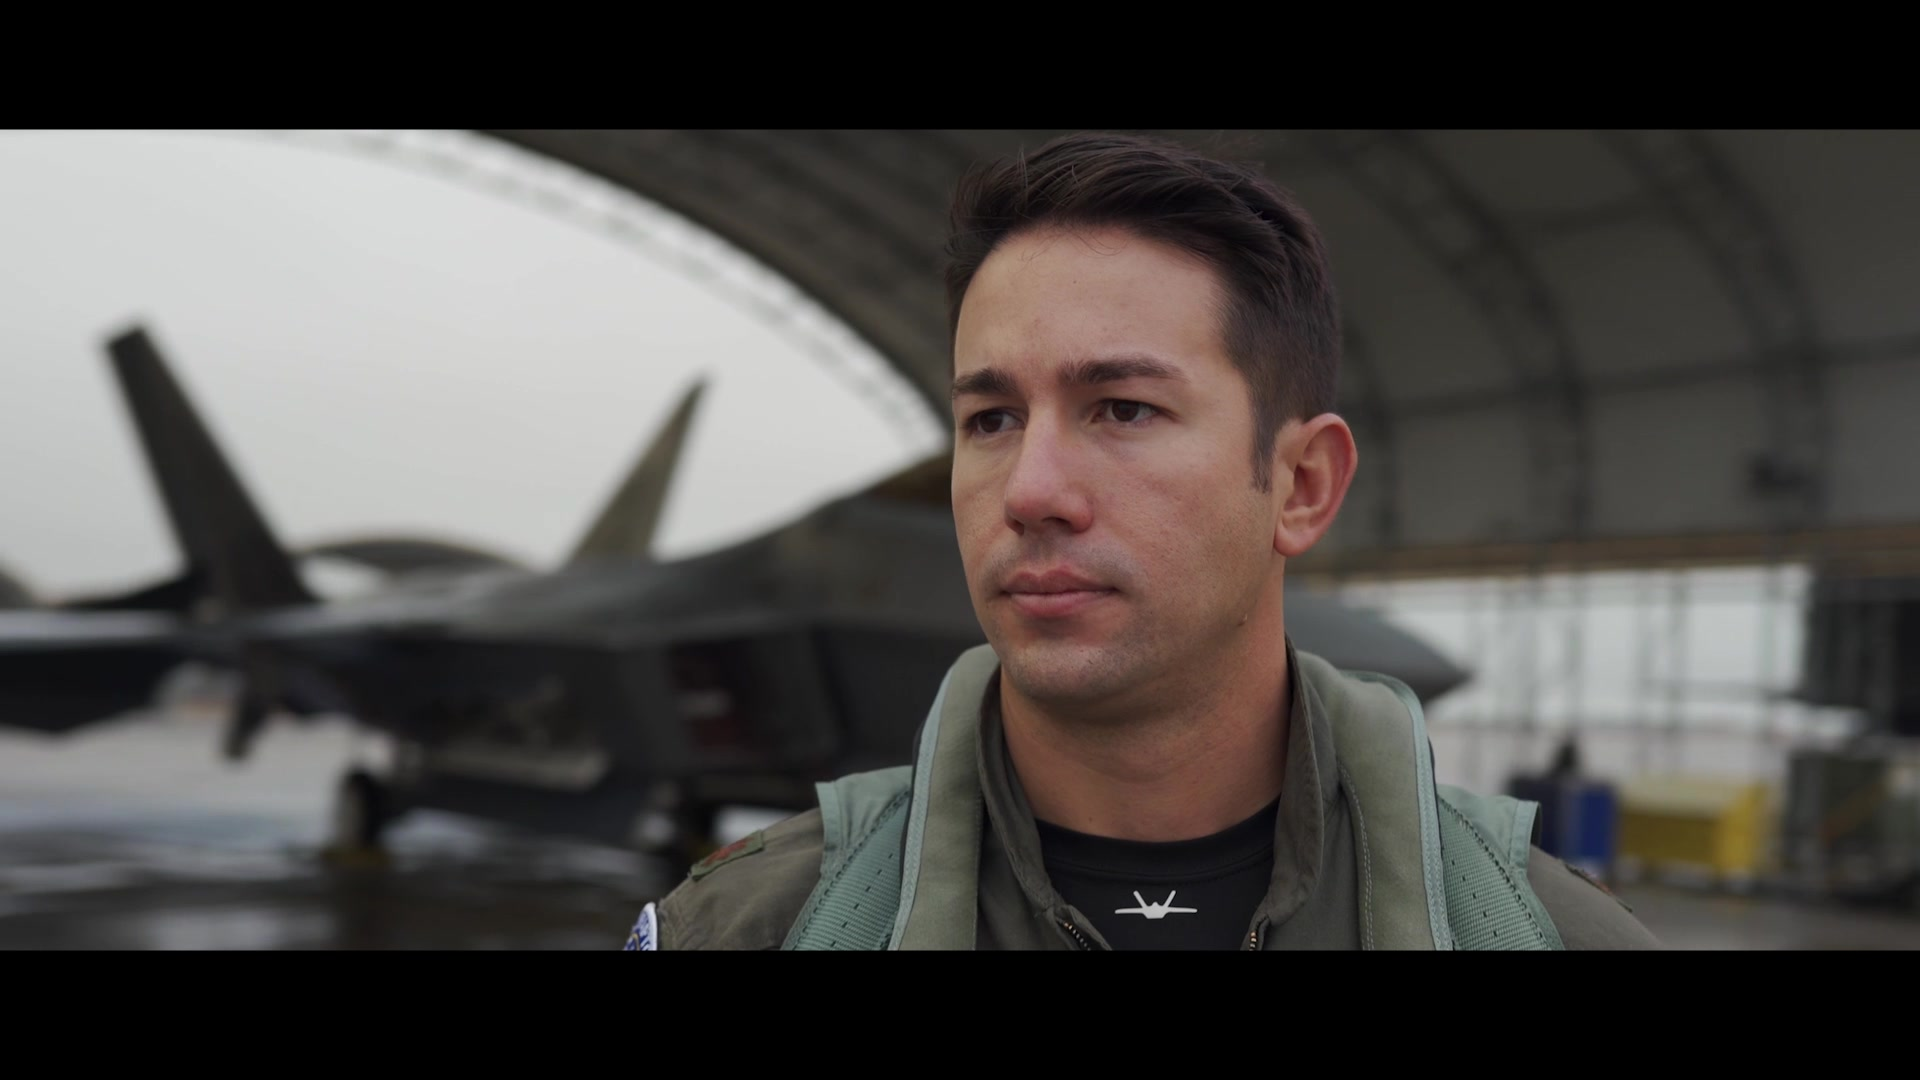 Video introducing Maj. Joshua 'Cabo' Gunderson, commander  of F-22 Raptor Demonstration Team.